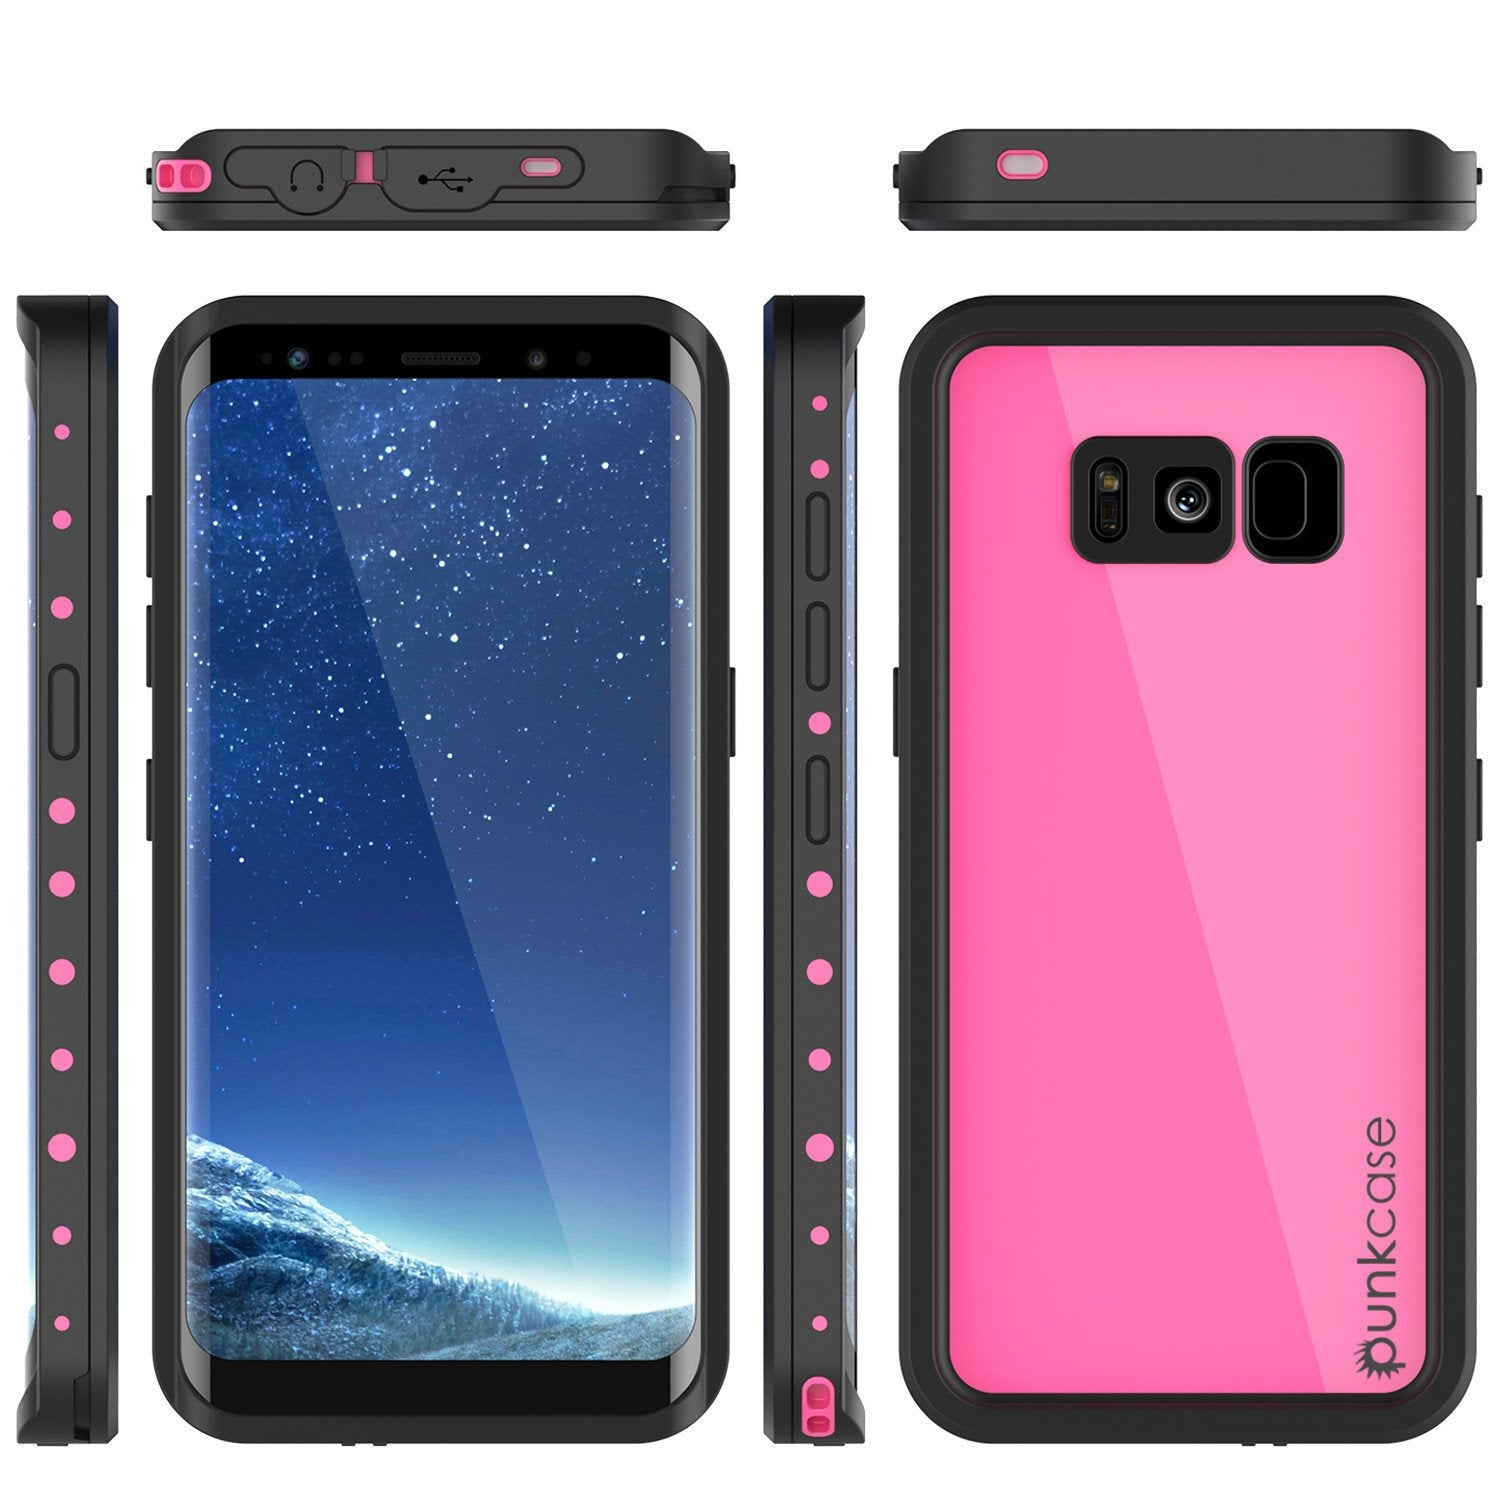 Galaxy S8 Waterproof Case PunkCase StudStar Pink Thin 6.6ft Underwater IP68 Shock/Snow Proof